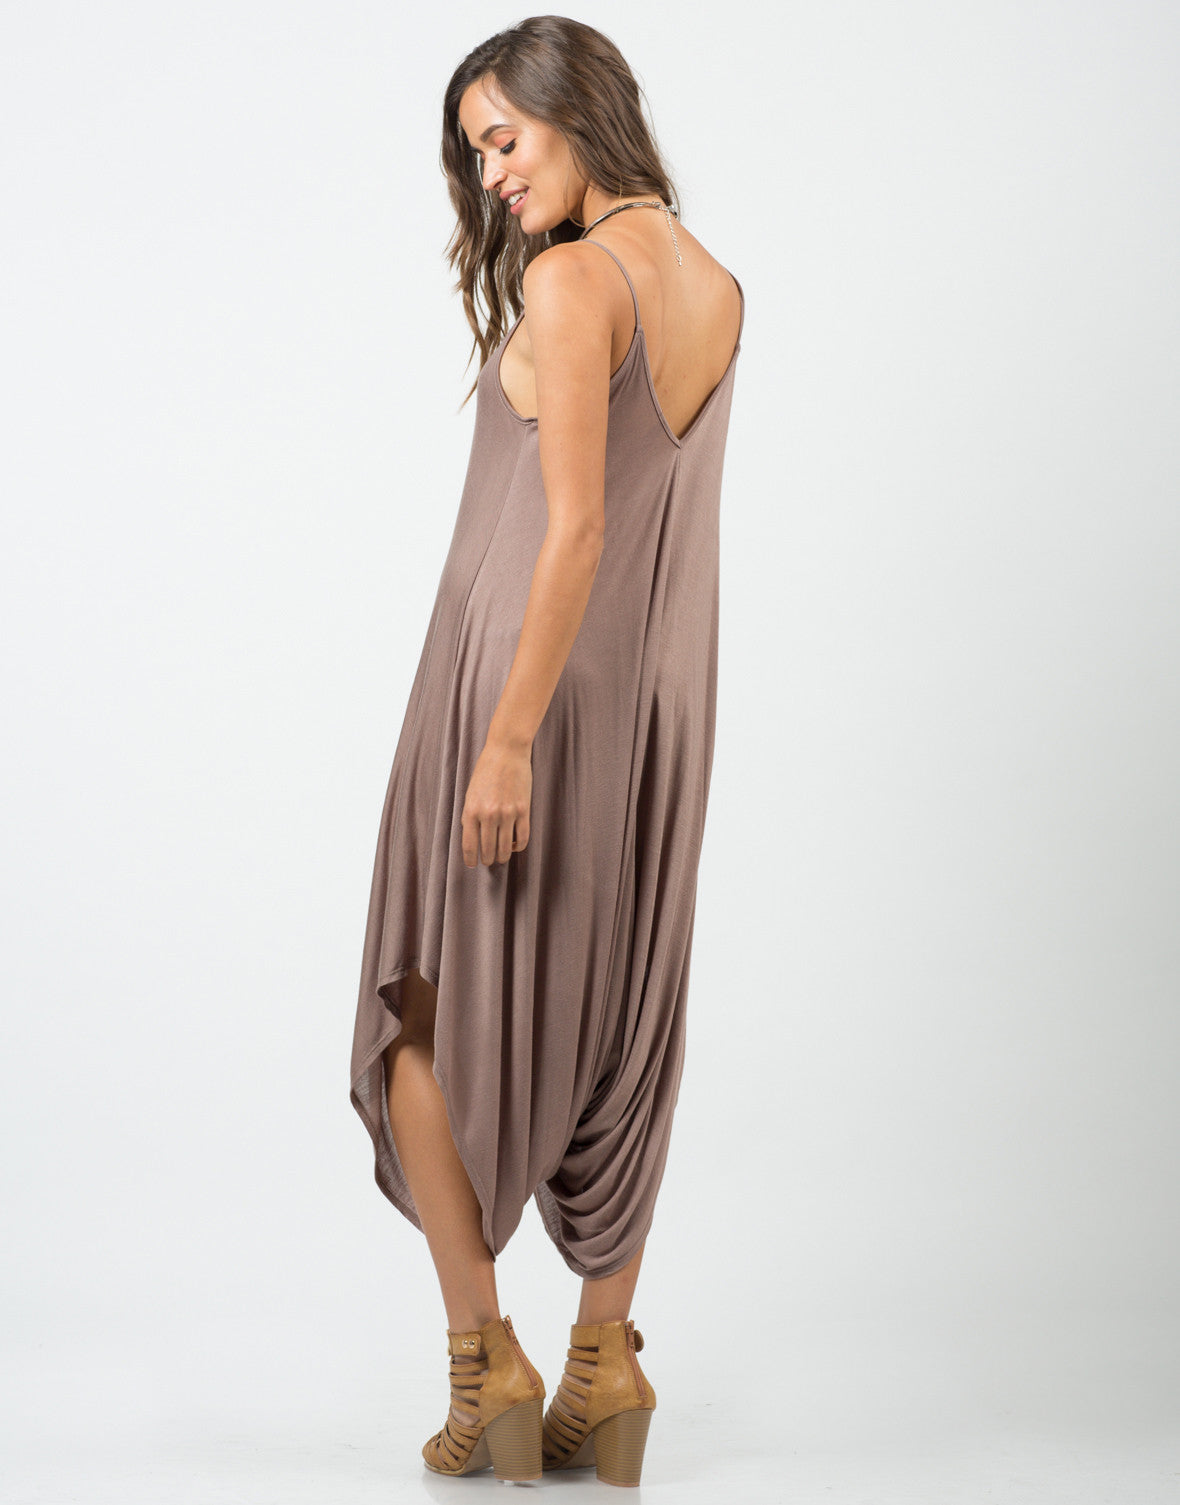 Back View of Draped Sides Romper